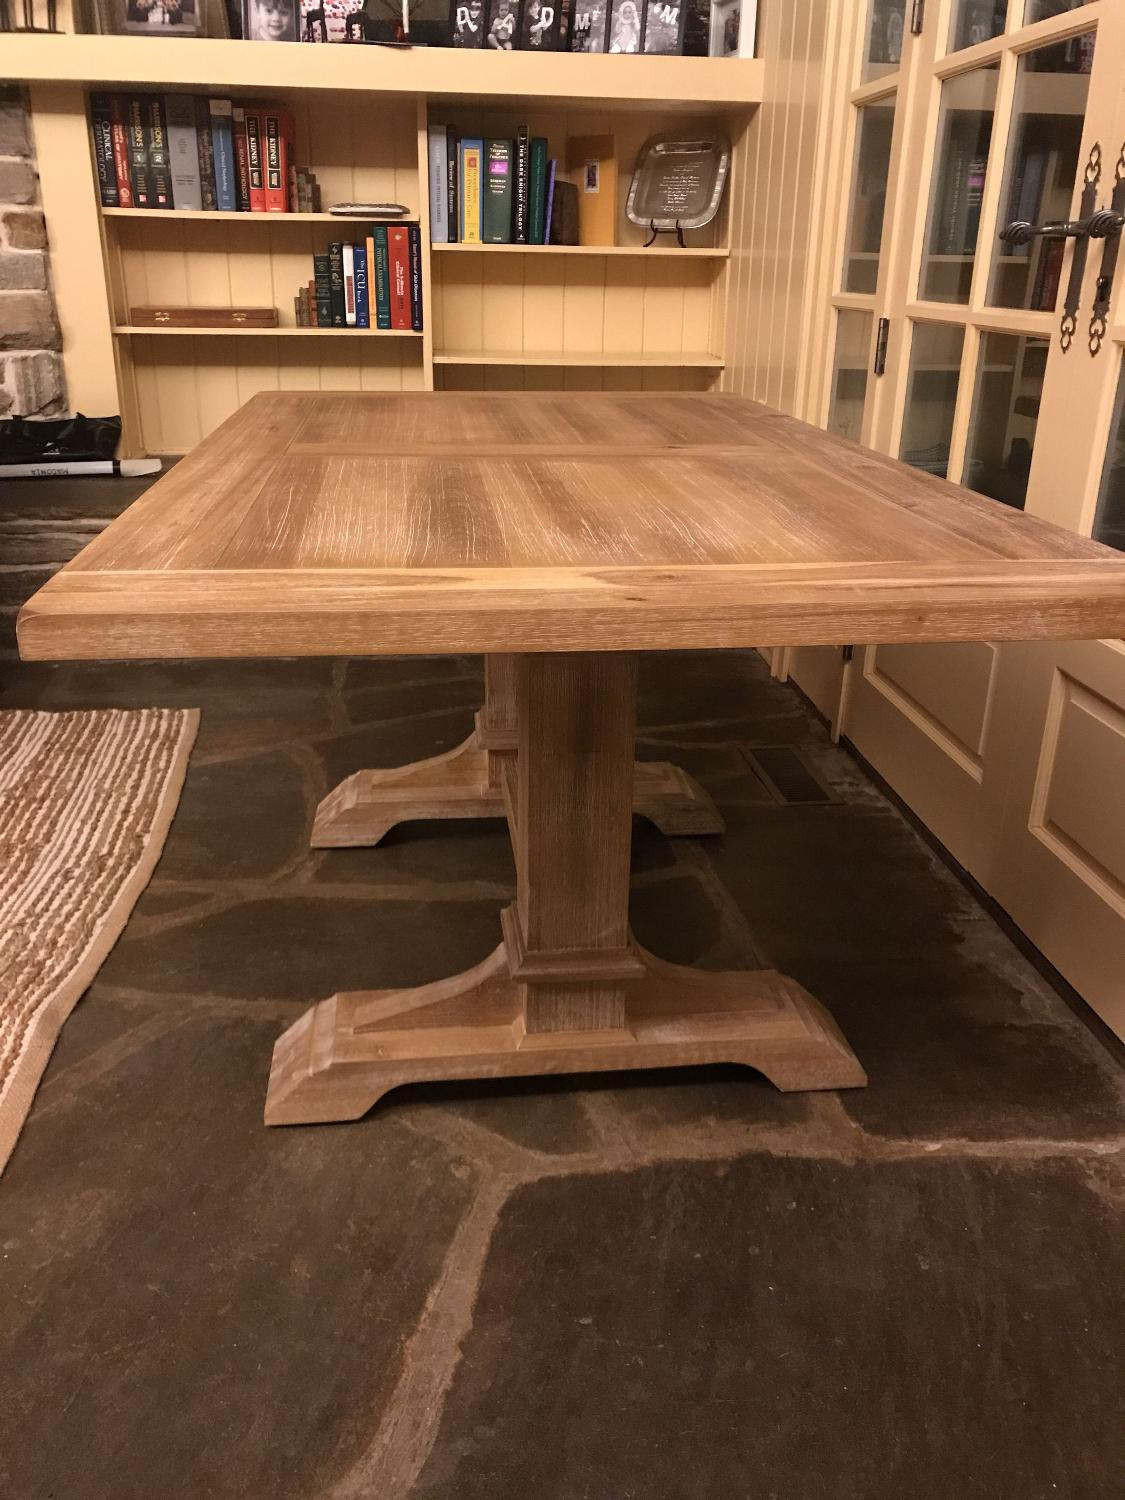 Pier 1 Dawson Stonewash Dining Table